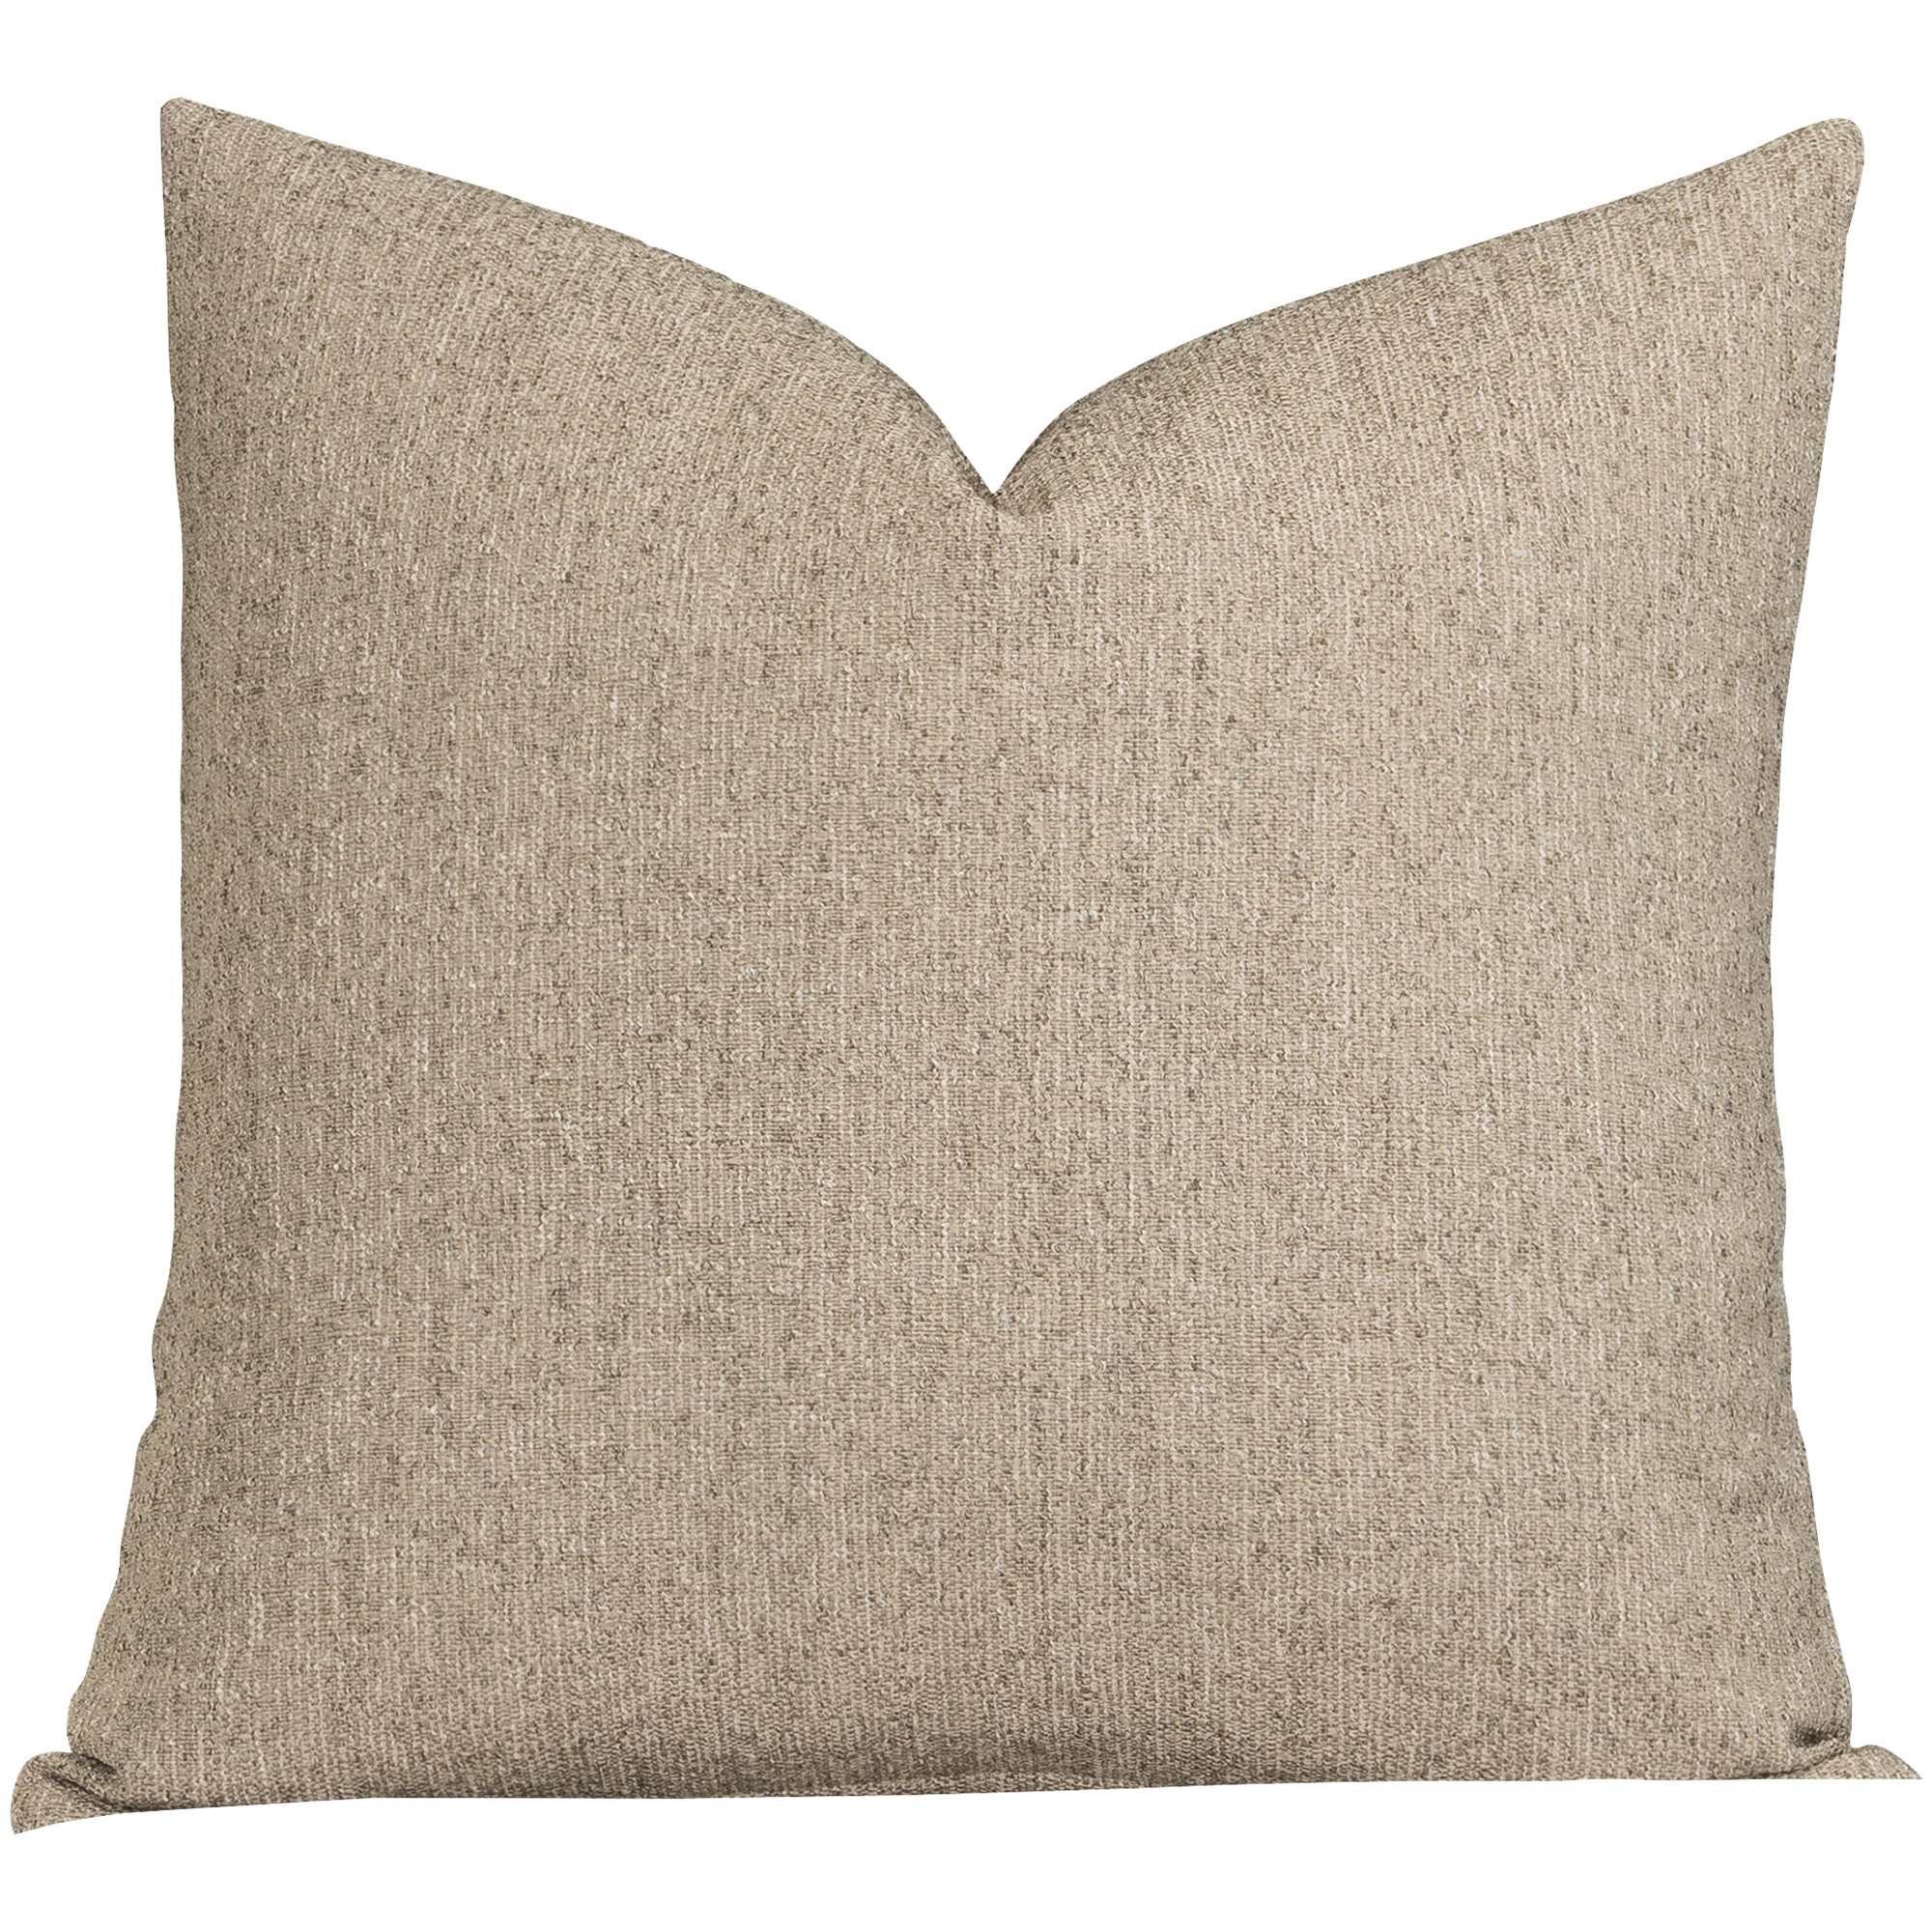 Sis Enterprises | Belmont Spirit Euro Pillow